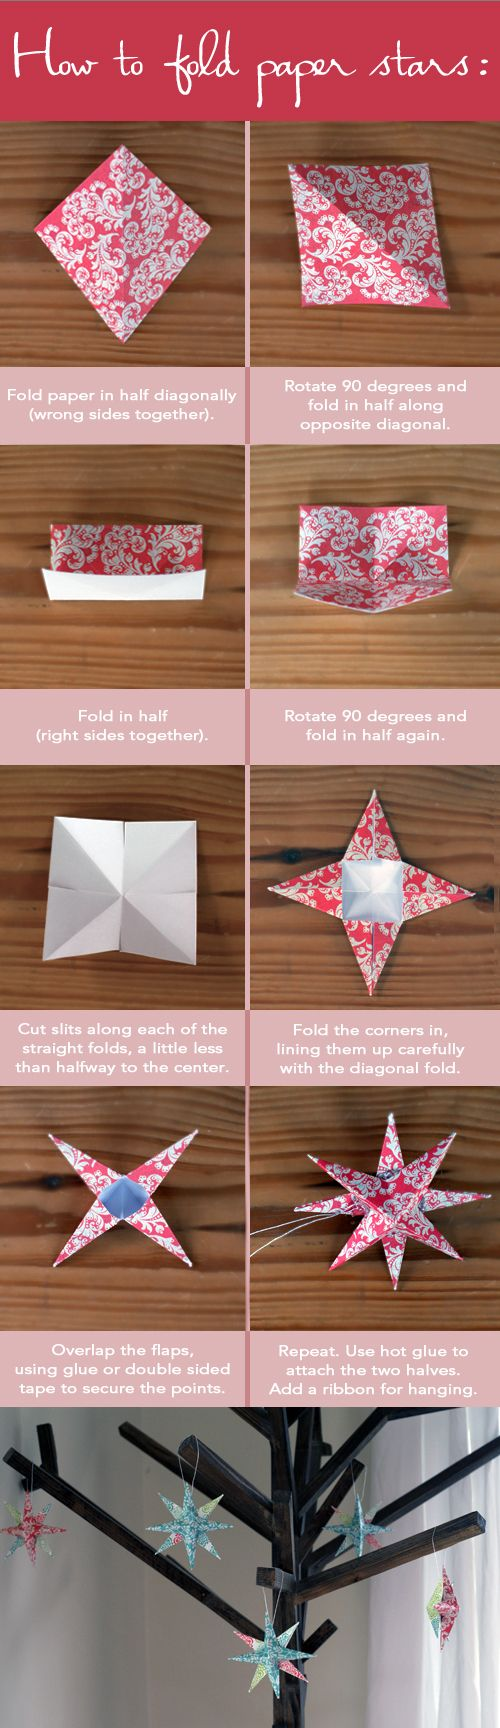 how to fold paper stars these start by paper so you how to fold paper stars these start 12 by 12 paper so you could do this a piece of su dsp cards epiphany christmas or nt